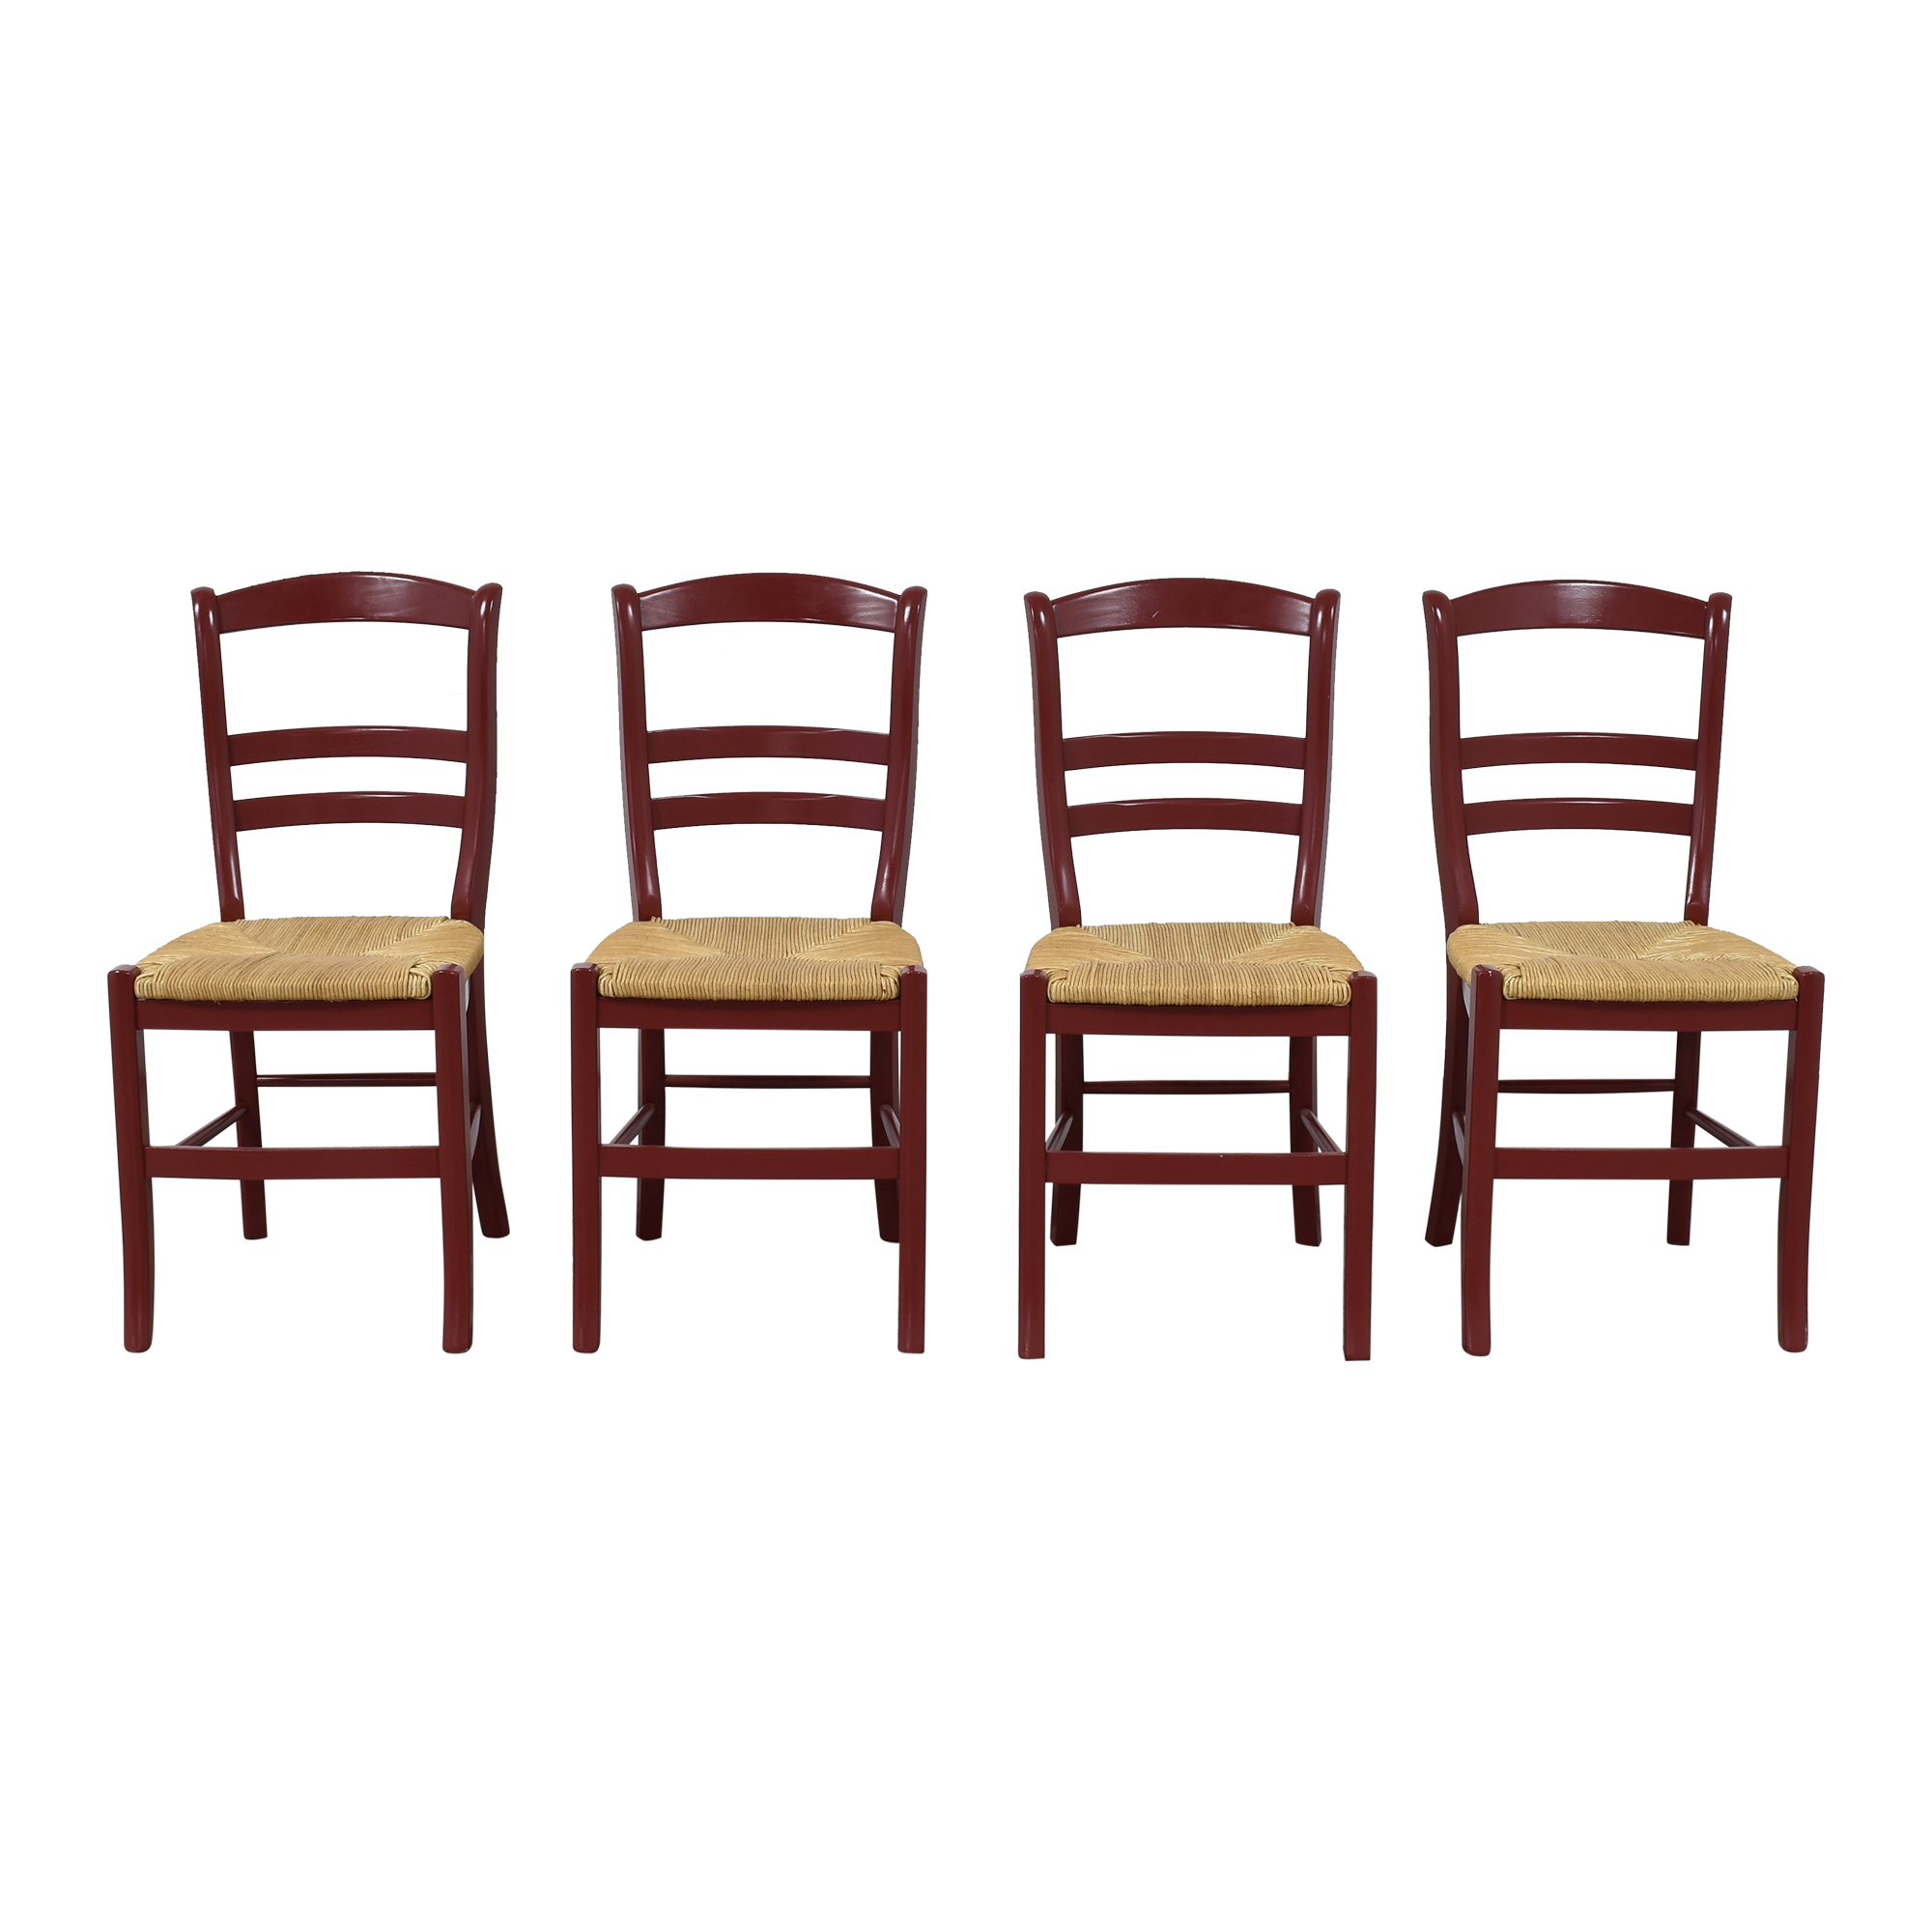 buy Pottery Barn Pottery Barn Isabella Dining Chairs online